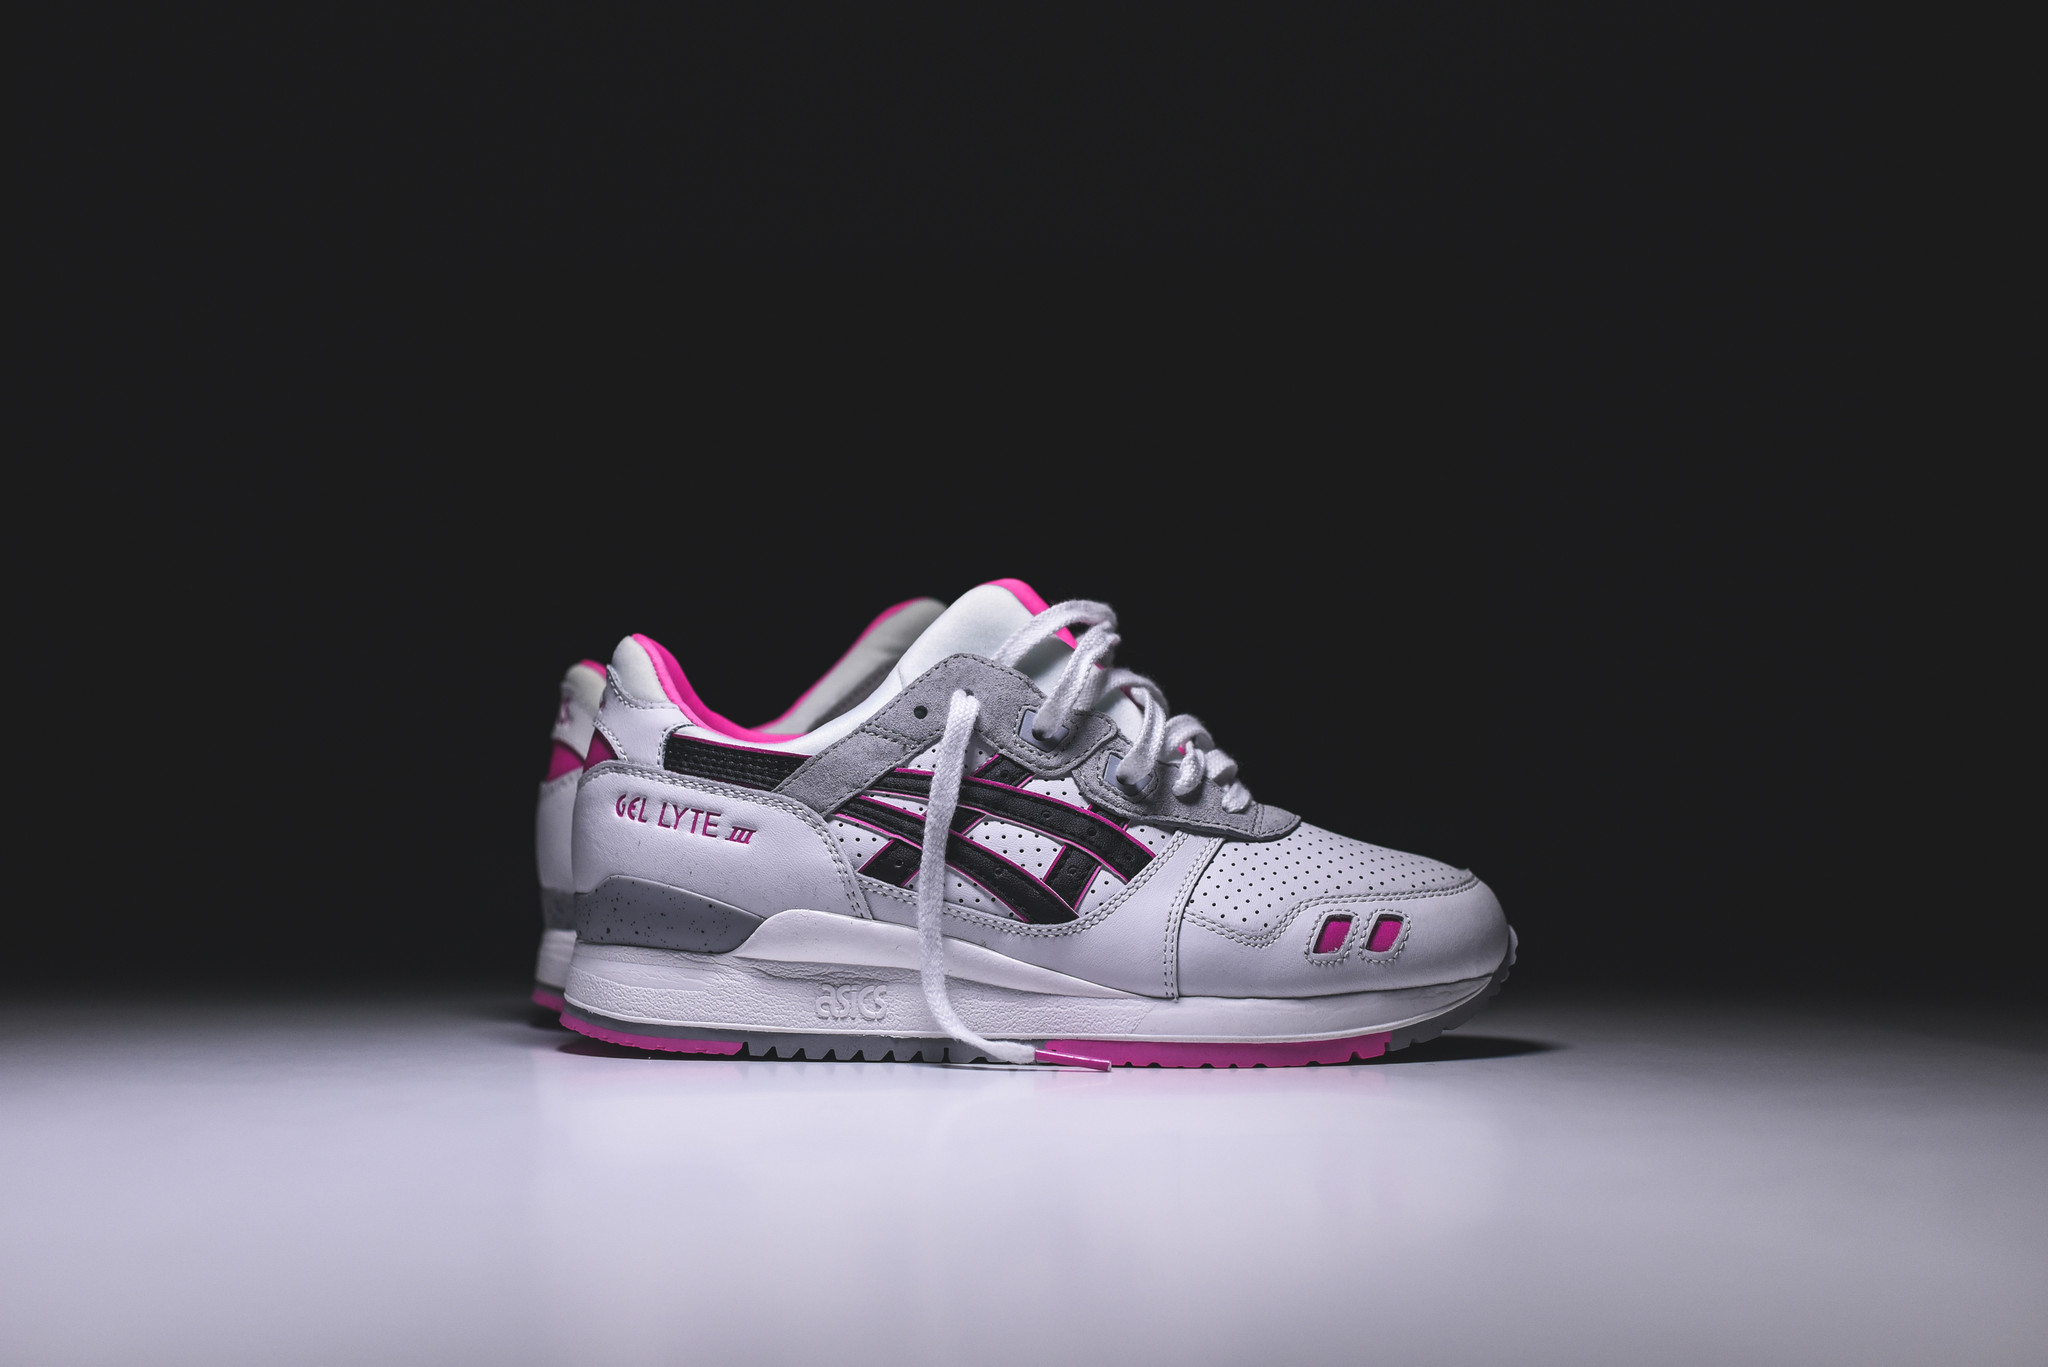 Asics Gel Lyte III - White/Black/Pink